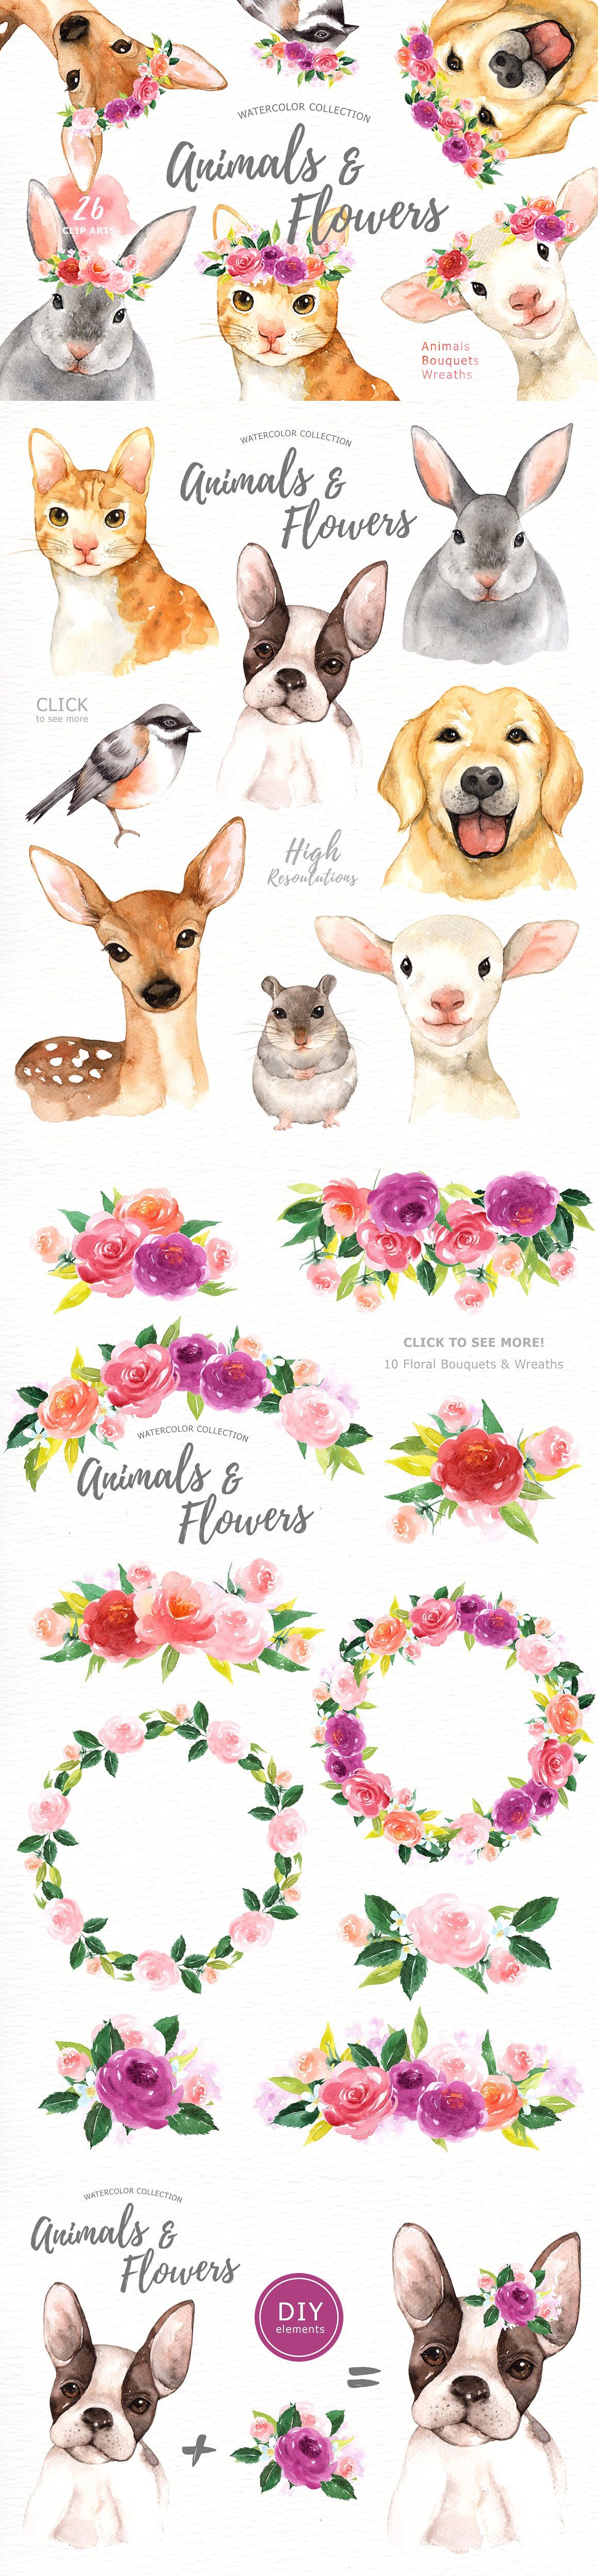 Animals & Flowers Watercolor Clipart.